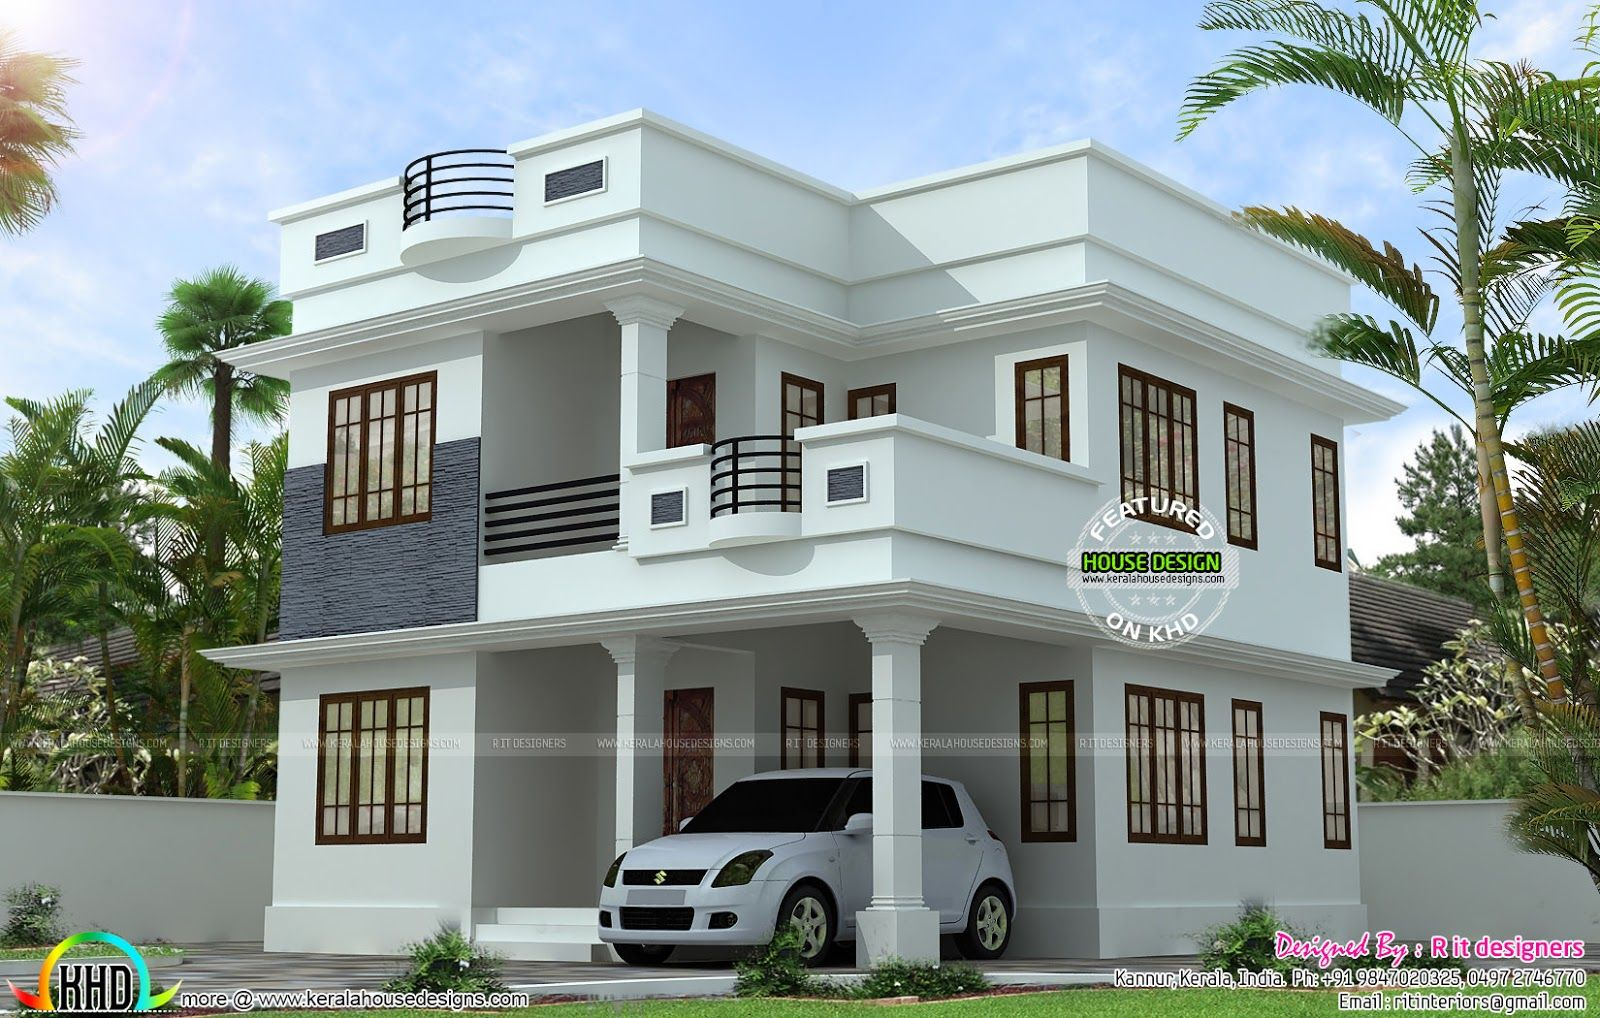 neat and simple small house plan kerala home design and floor plans - Simple House Plans